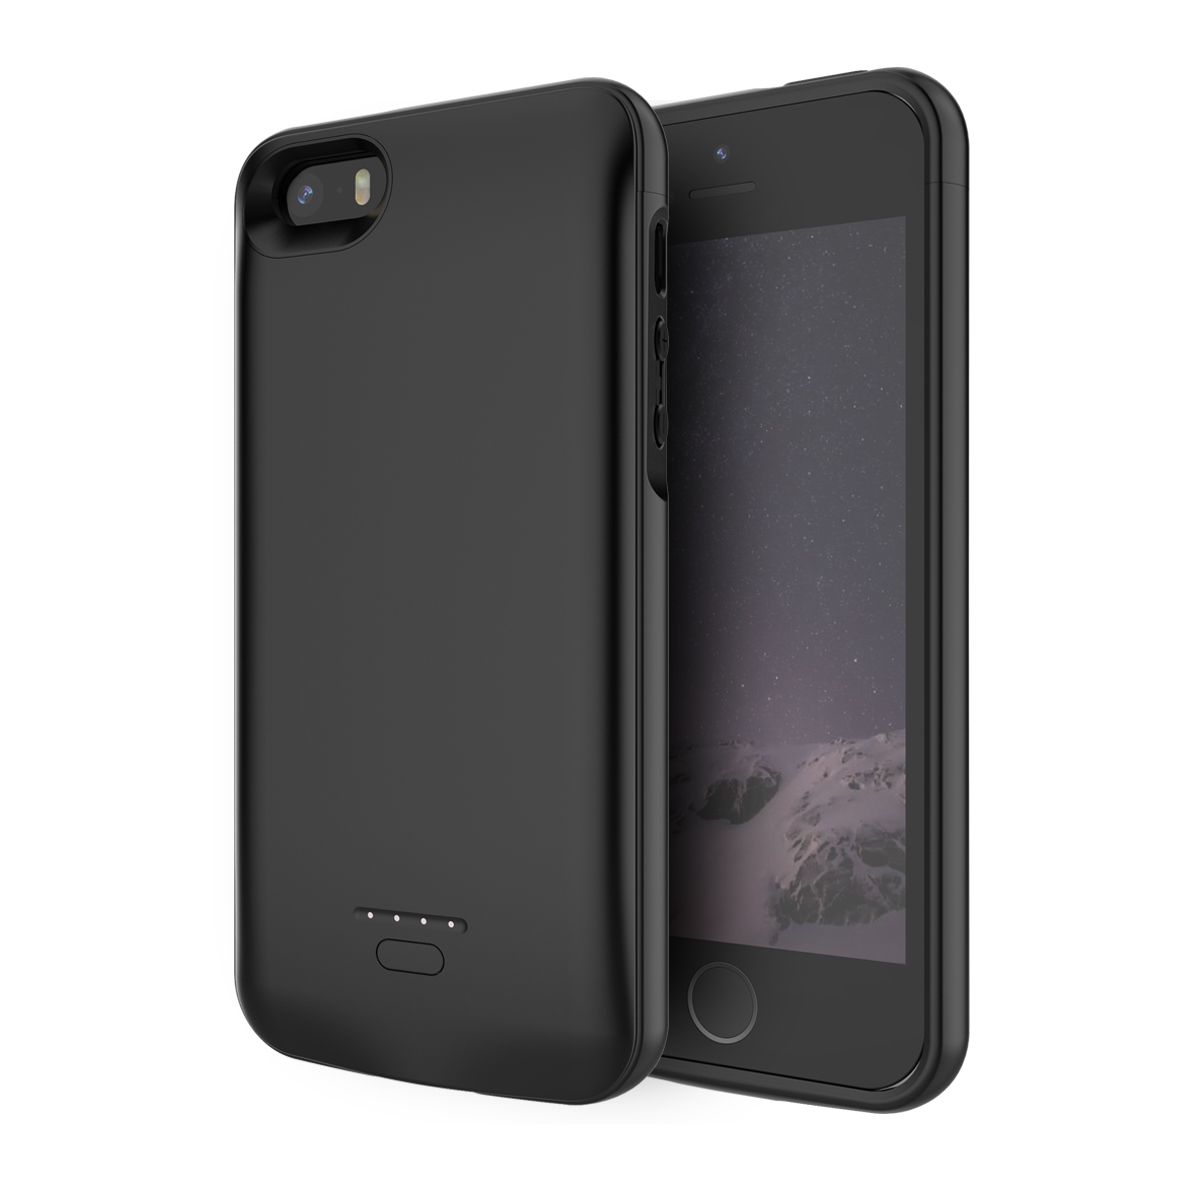 <font><b>Battery</b></font> Charger <font><b>Case</b></font> For <font><b>Iphone</b></font> Se 5se 5 <font><b>5s</b></font> 4000mah Power Bank Charging Powerbank <font><b>Case</b></font> For <font><b>Iphone</b></font> 5 6 7 8 X <font><b>Battery</b></font> <font><b>Case</b></font> image